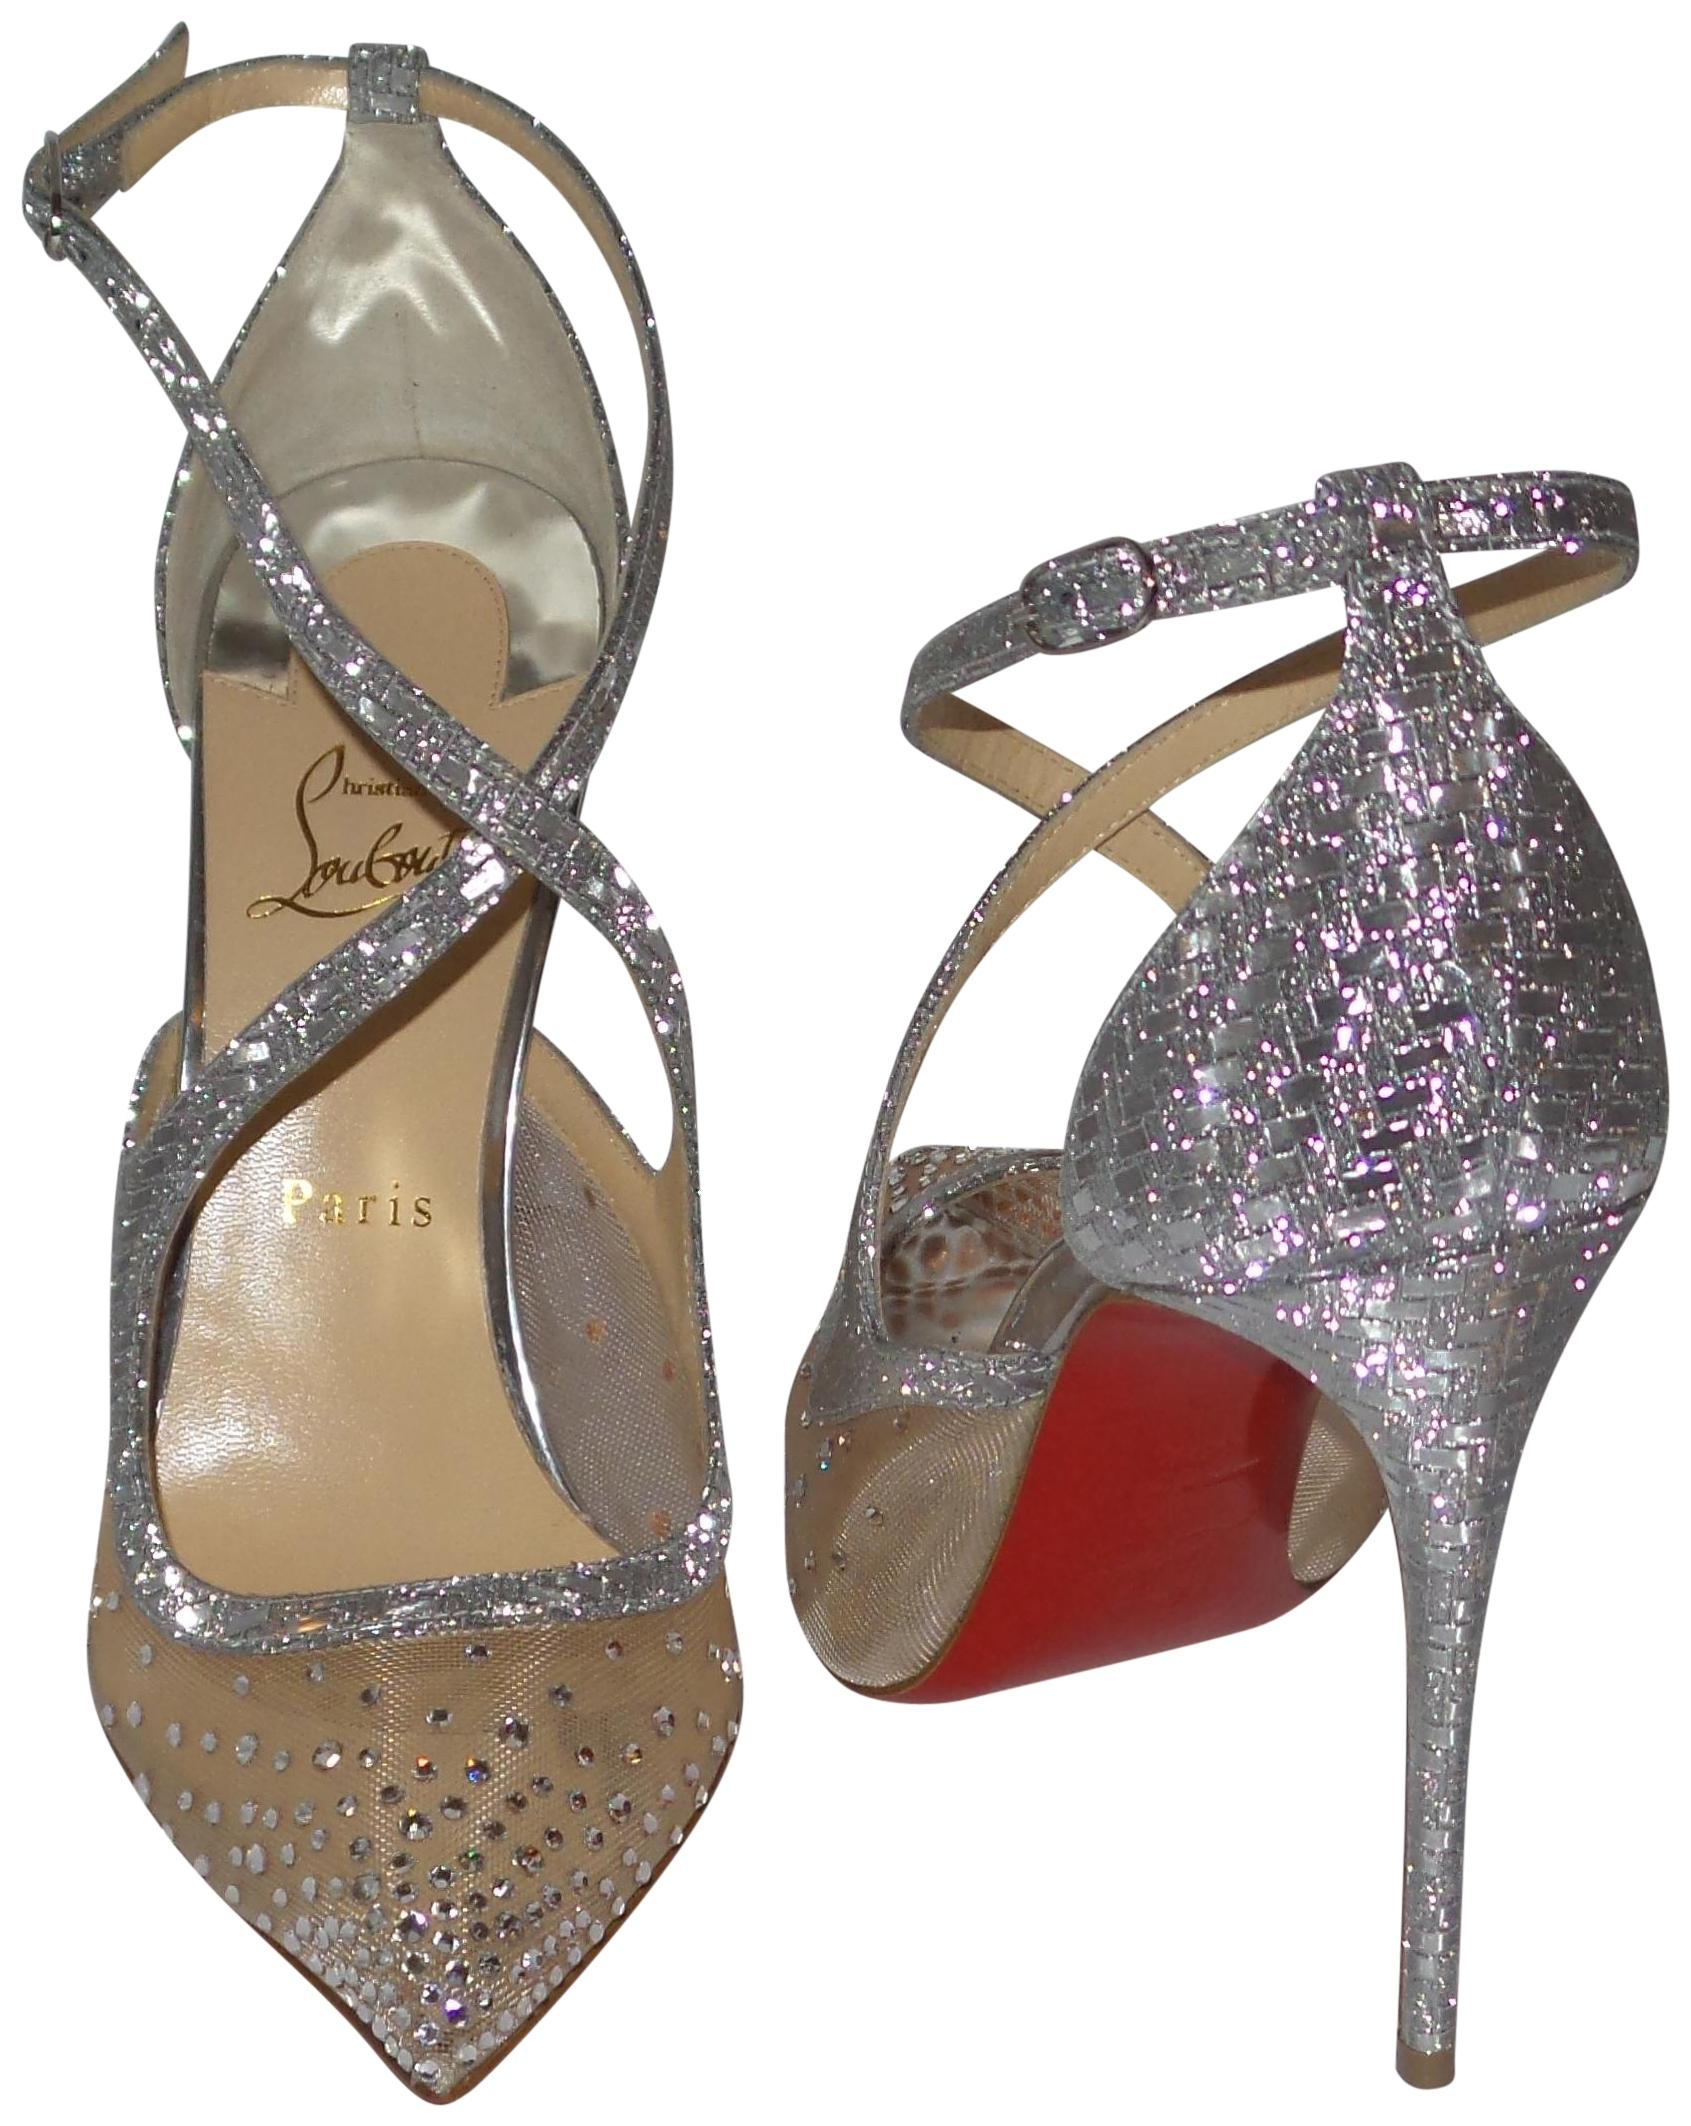 0f81b0acd2c Christian Louboutin Silver Twistissima Strass Strass Strass 100 Crystal  Pumps Size EU 40.5 (Approx.